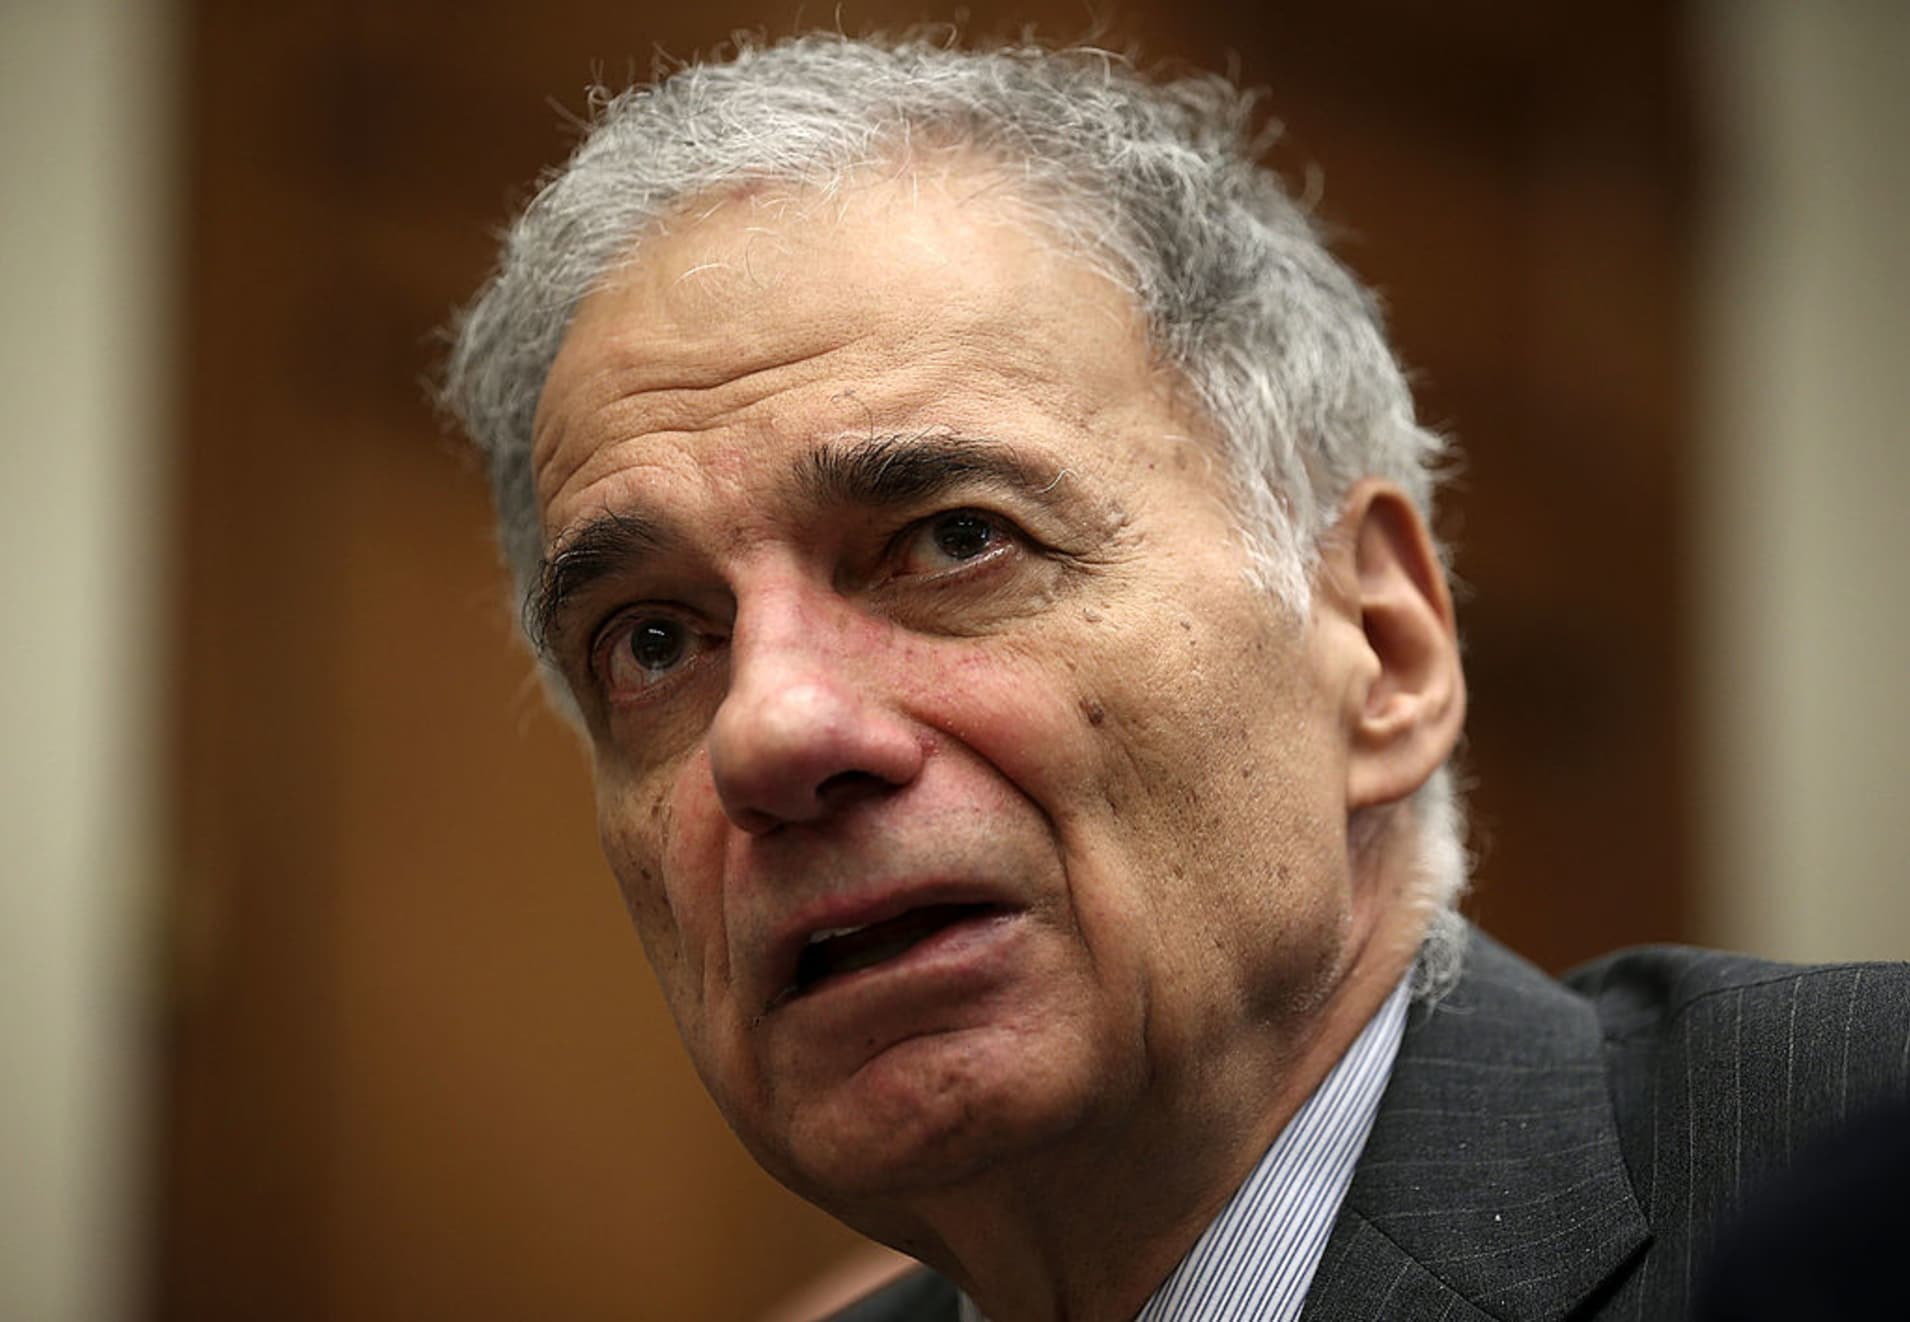 Ralph Nader's niece died in one of the Boeing crashes. Now he's calling for the 737 Max 8 to be grounded